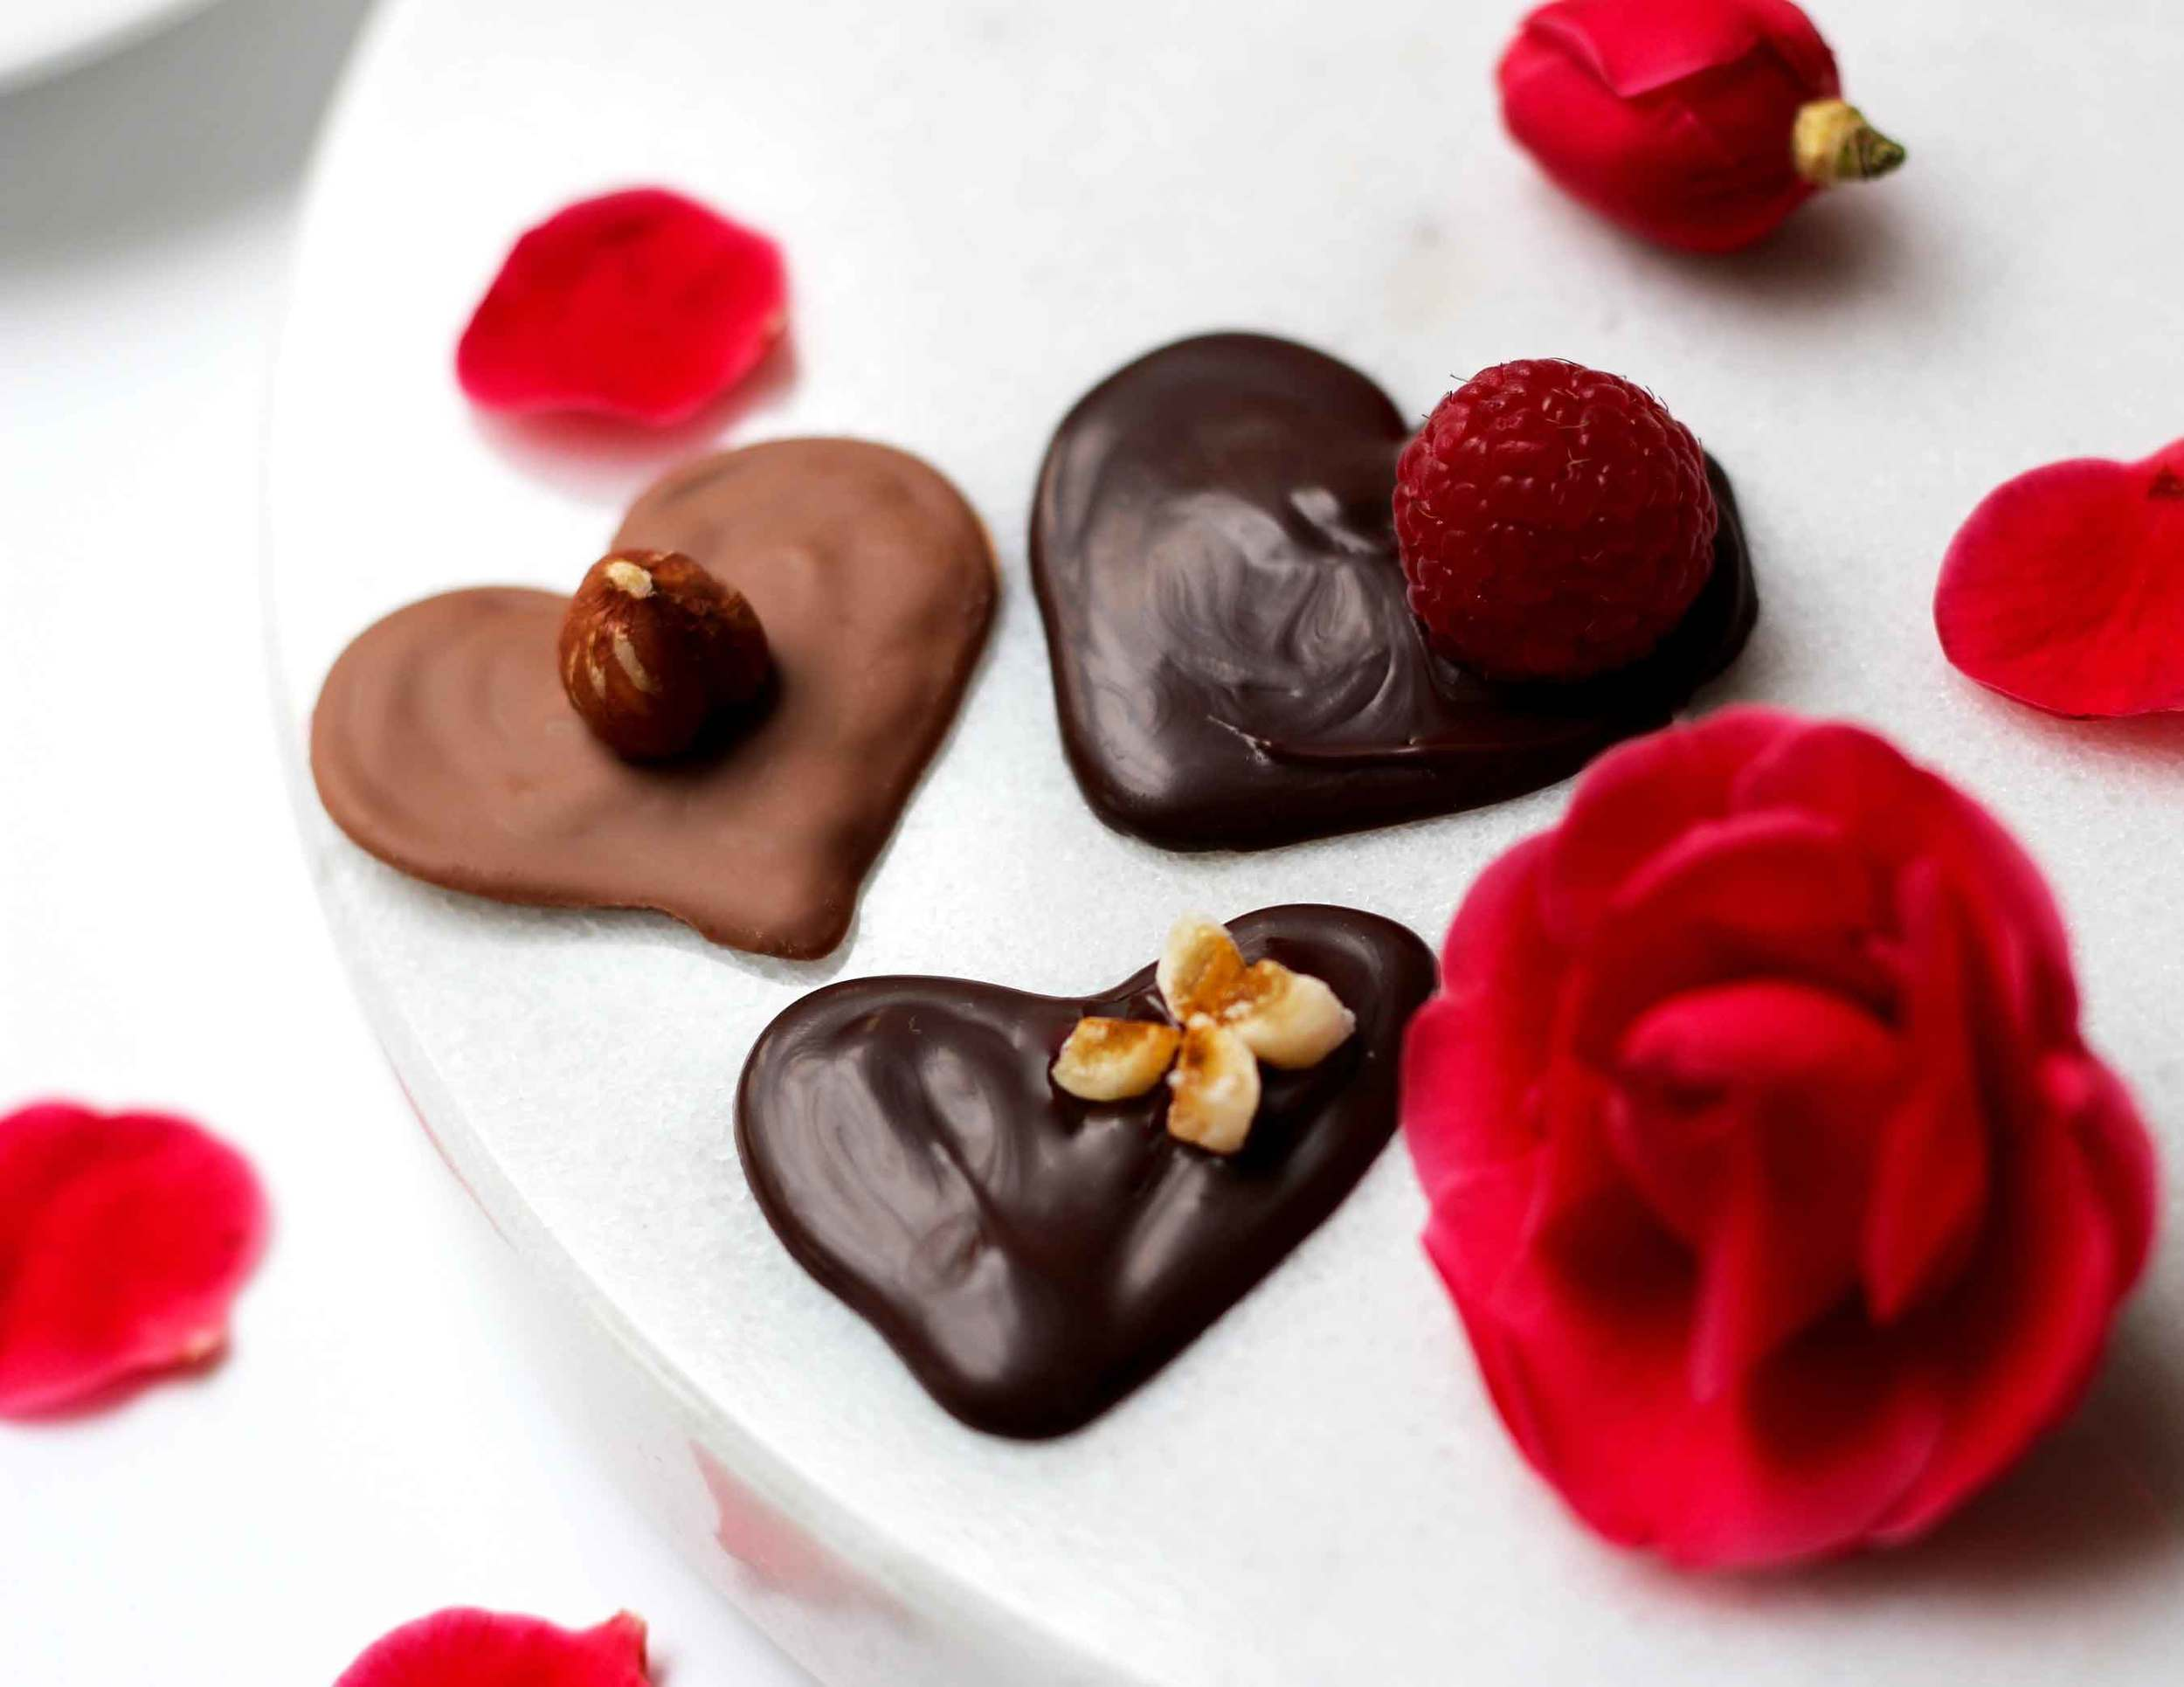 handmade chocolate hearts for Valentine's Day, recipe by Thread & Whisk